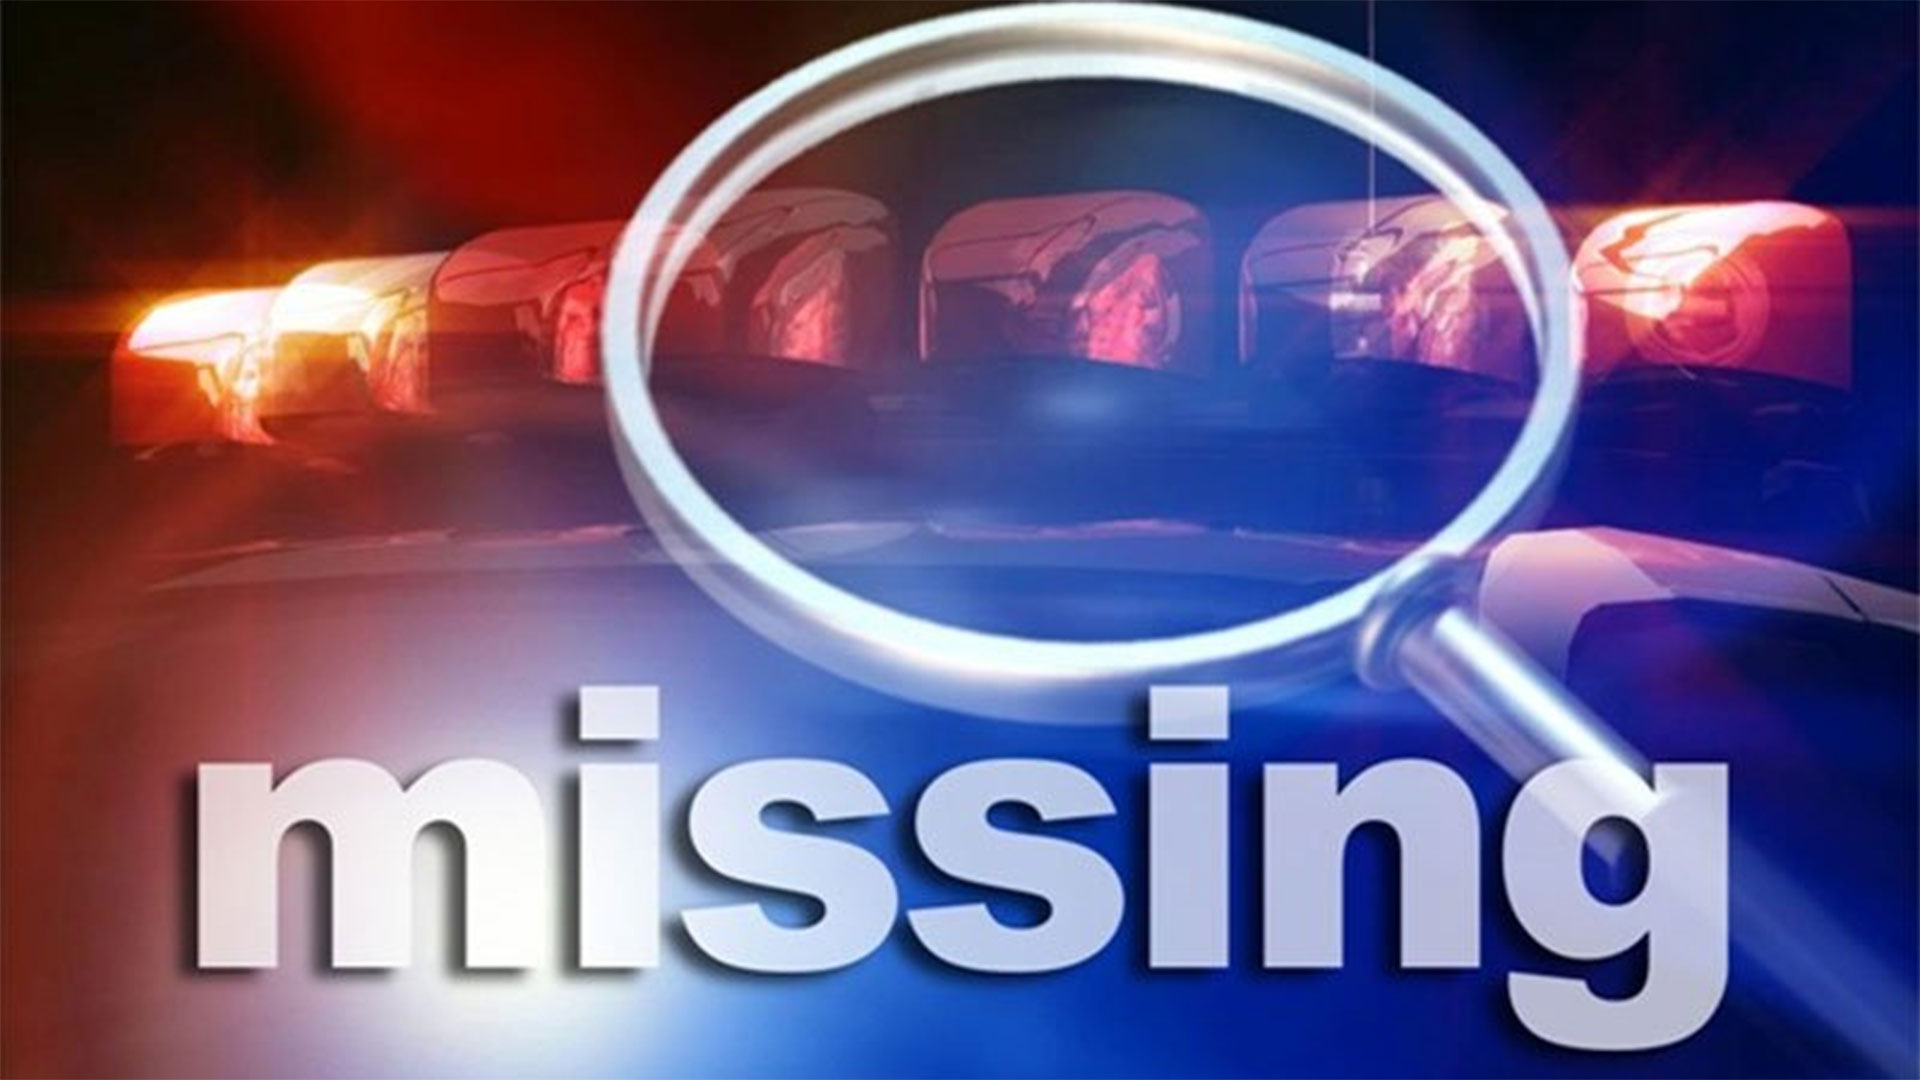 KELO missing law enforcement authorities search